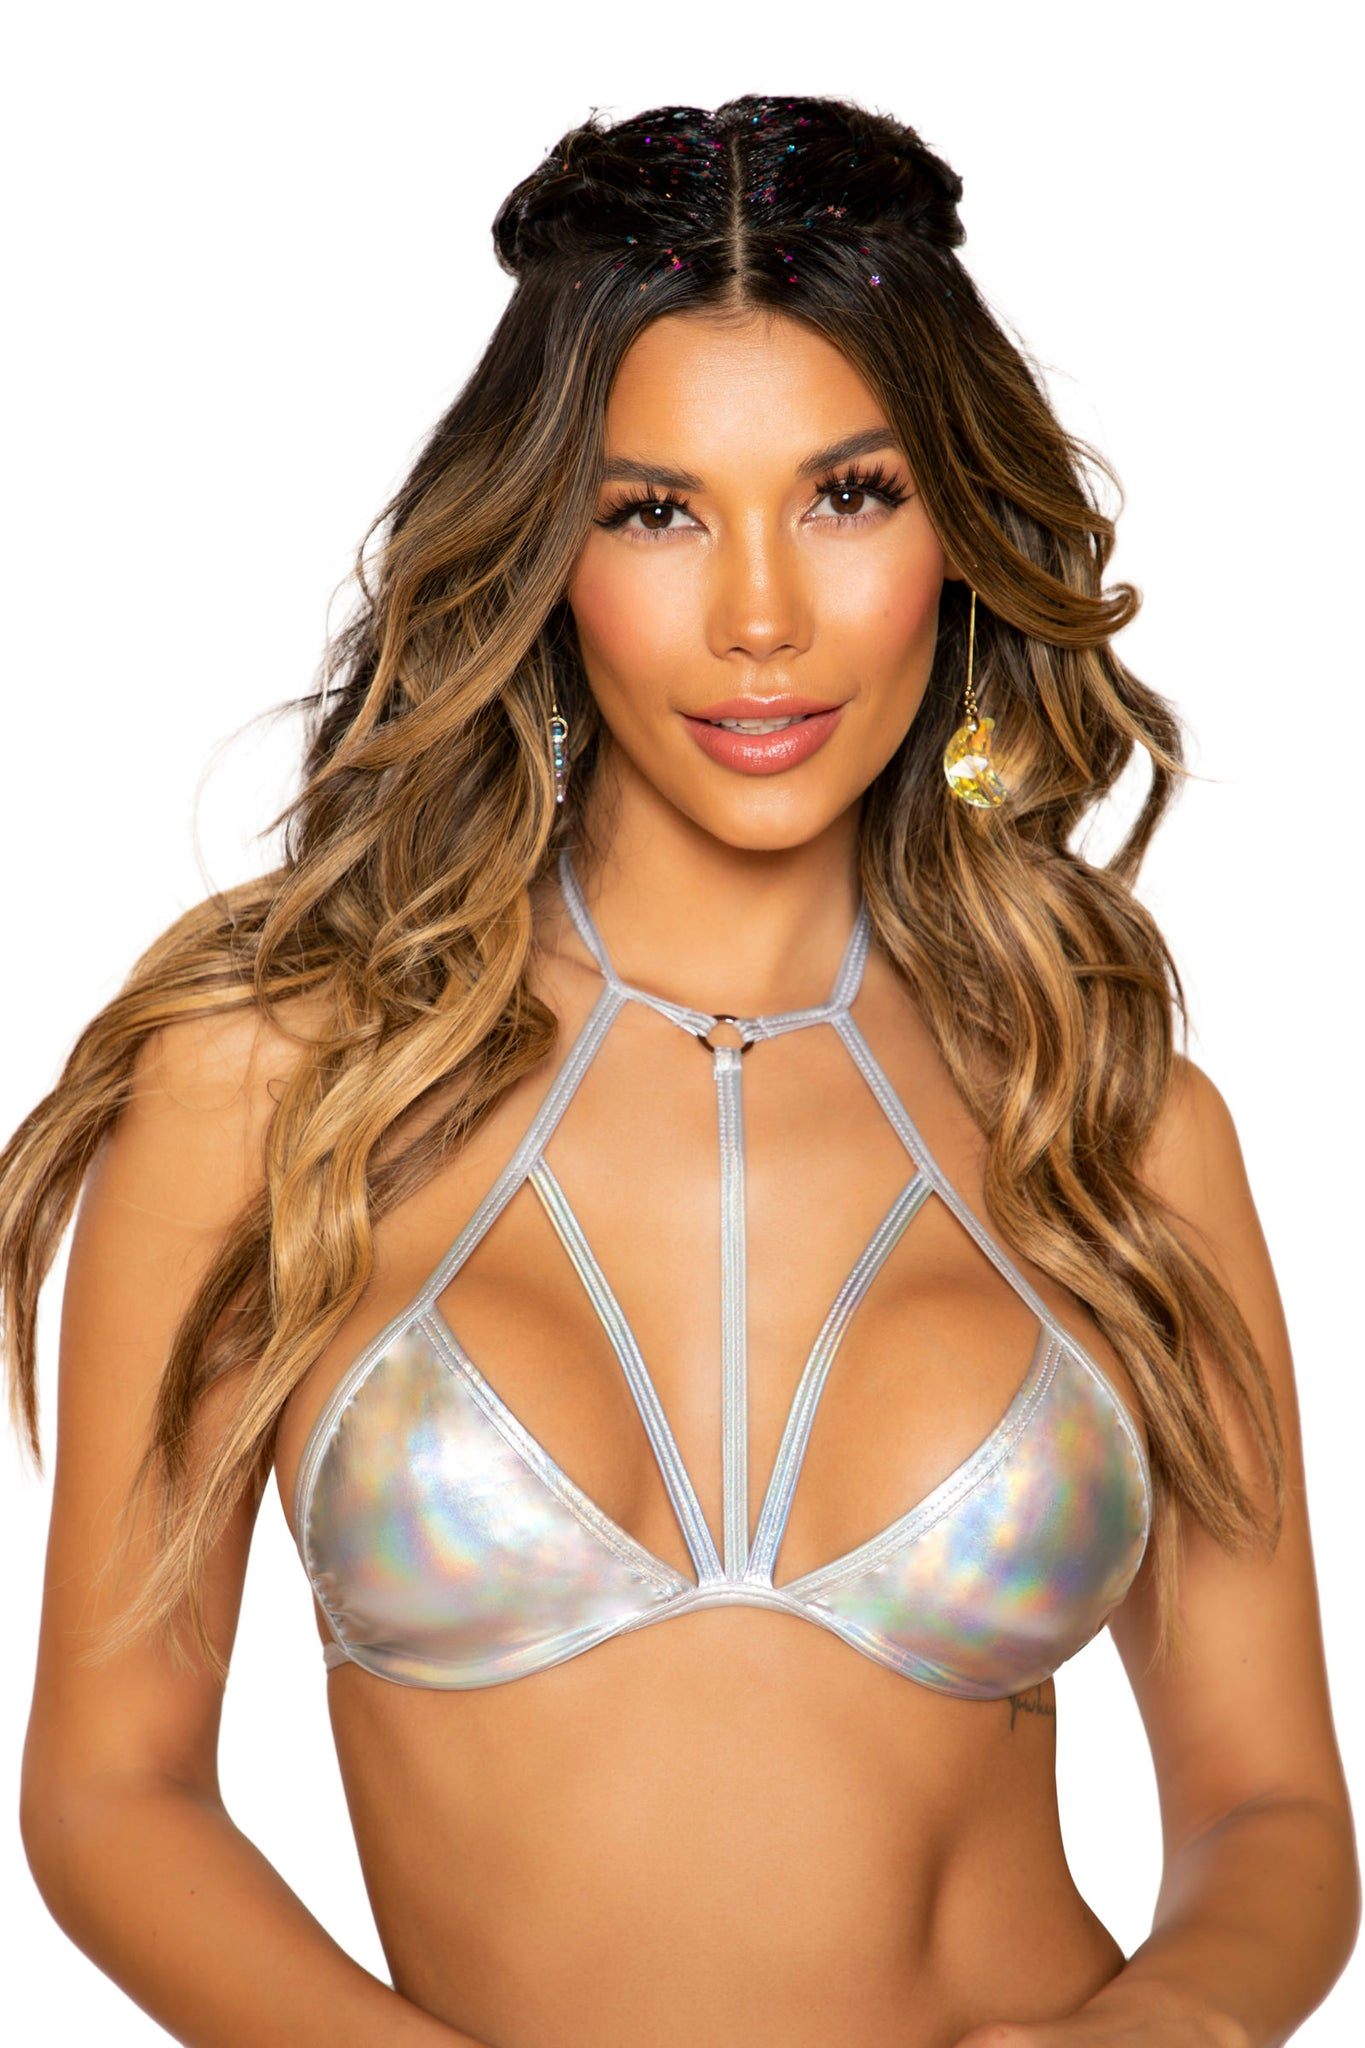 Shiny Metallic Bikini Top with Strap Detail